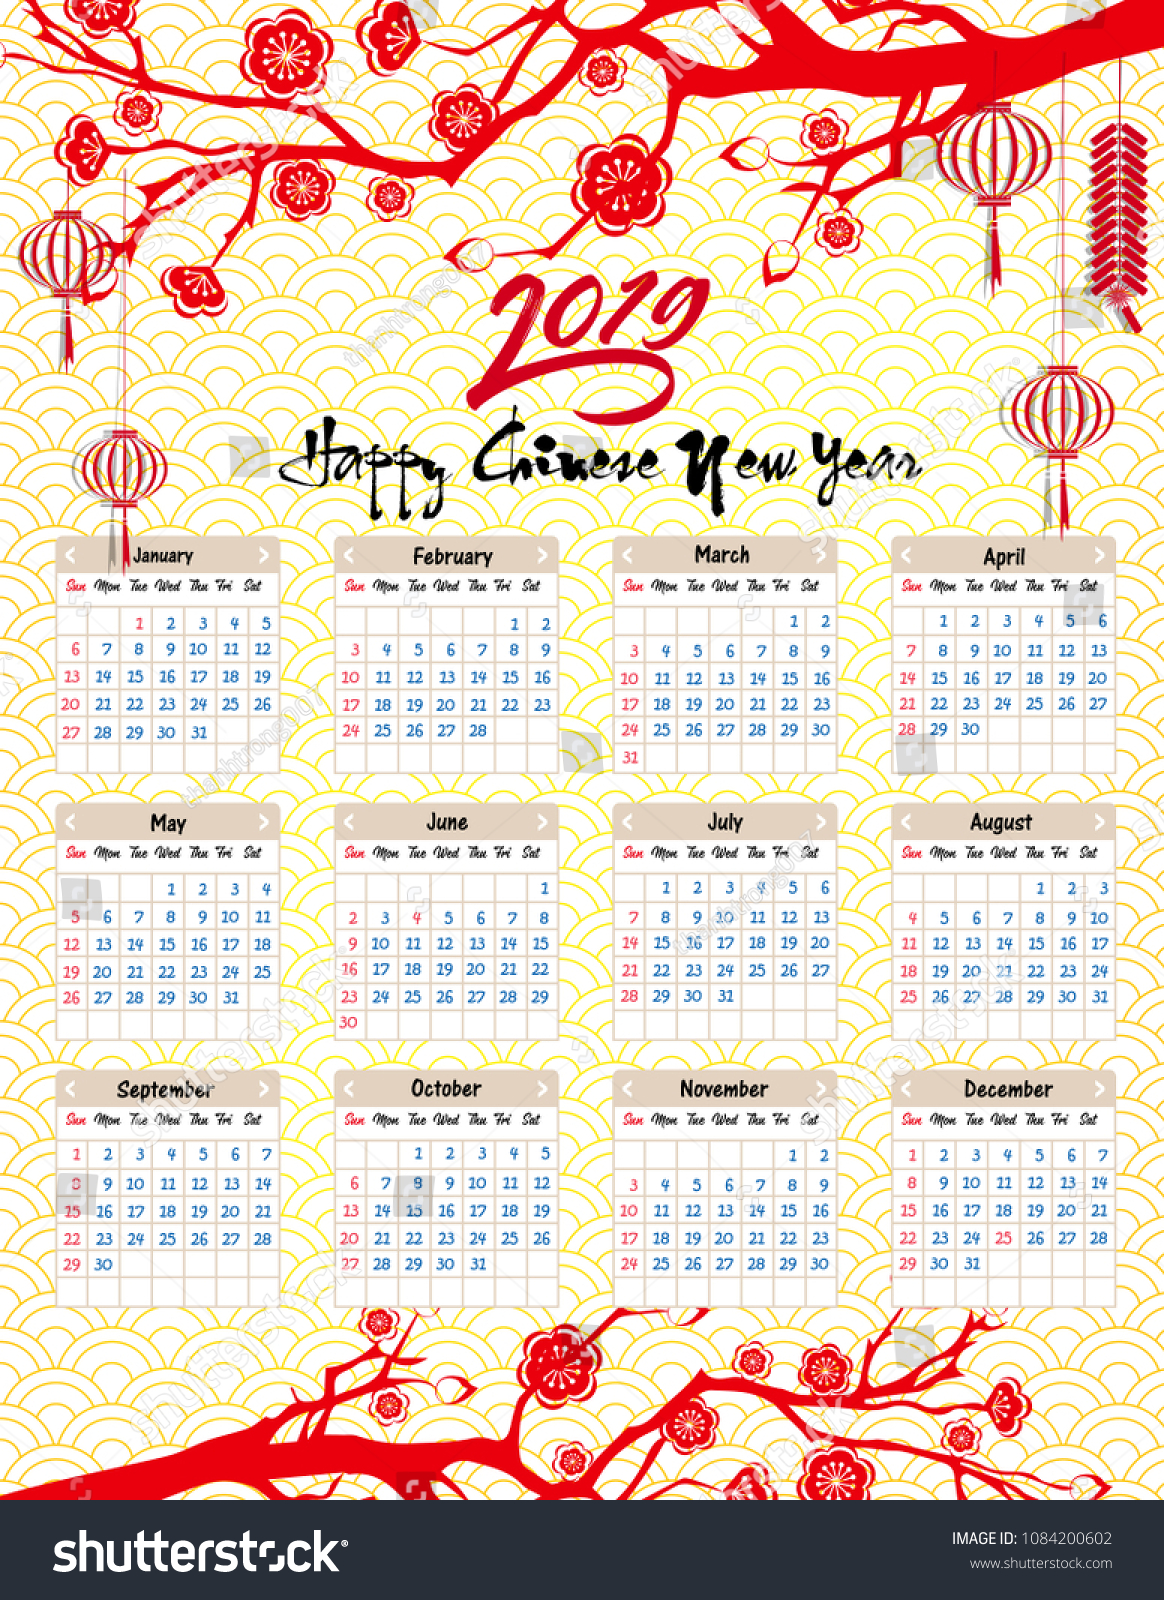 Lunar New Year 2019 Calendar With Chinese Happy Stock Vector Royalty Free